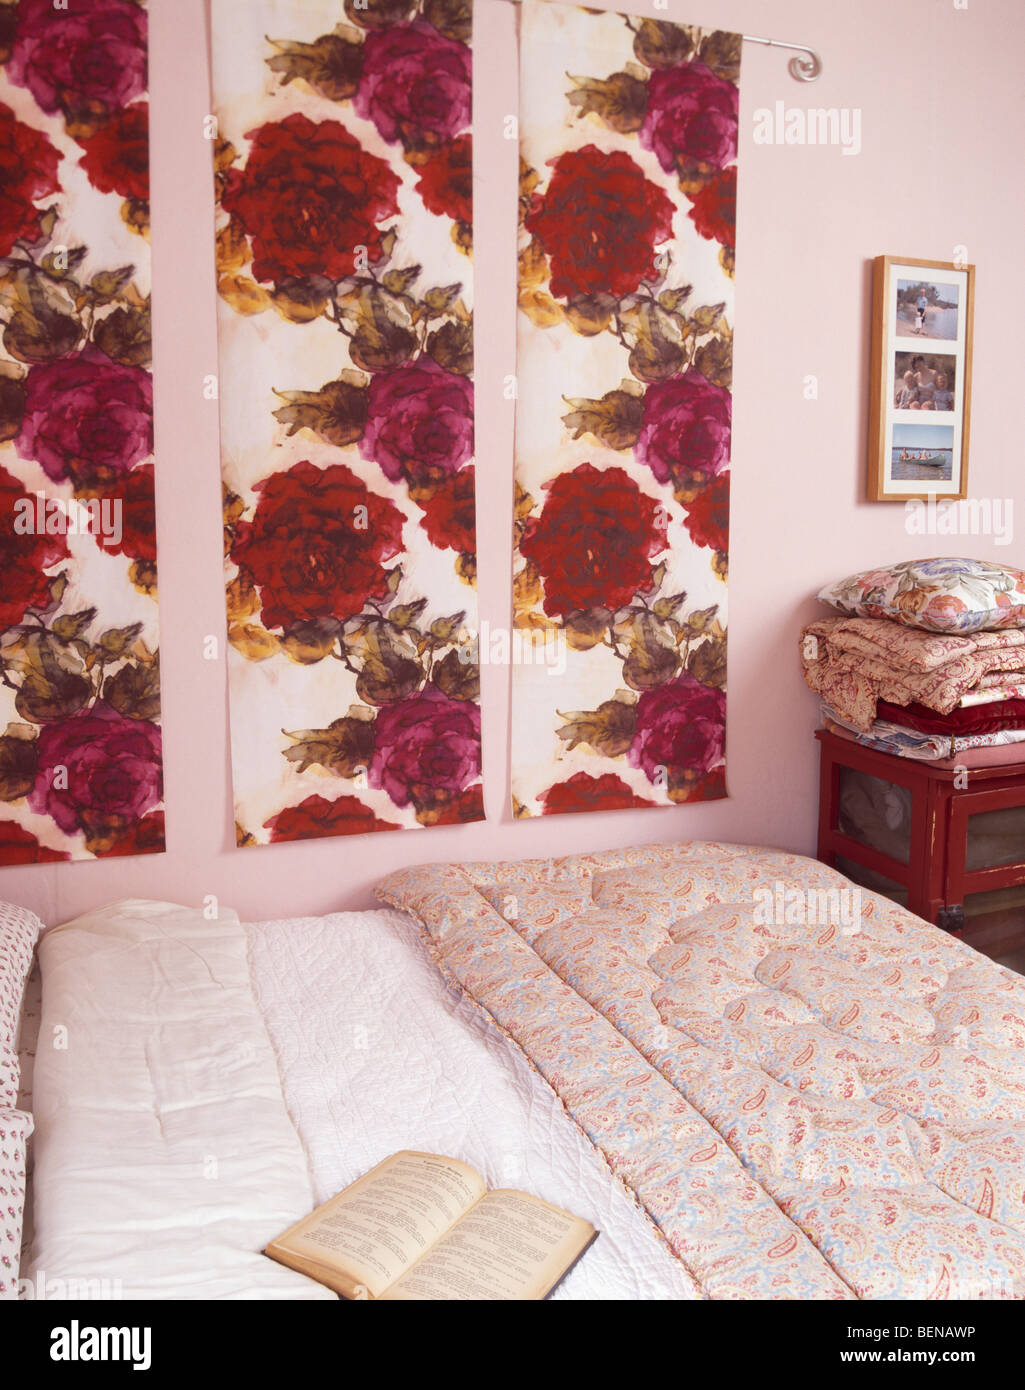 Small Pink Bedroom Small Pink Bedroom With Red Rose Patterned Fabric Panels On Wall